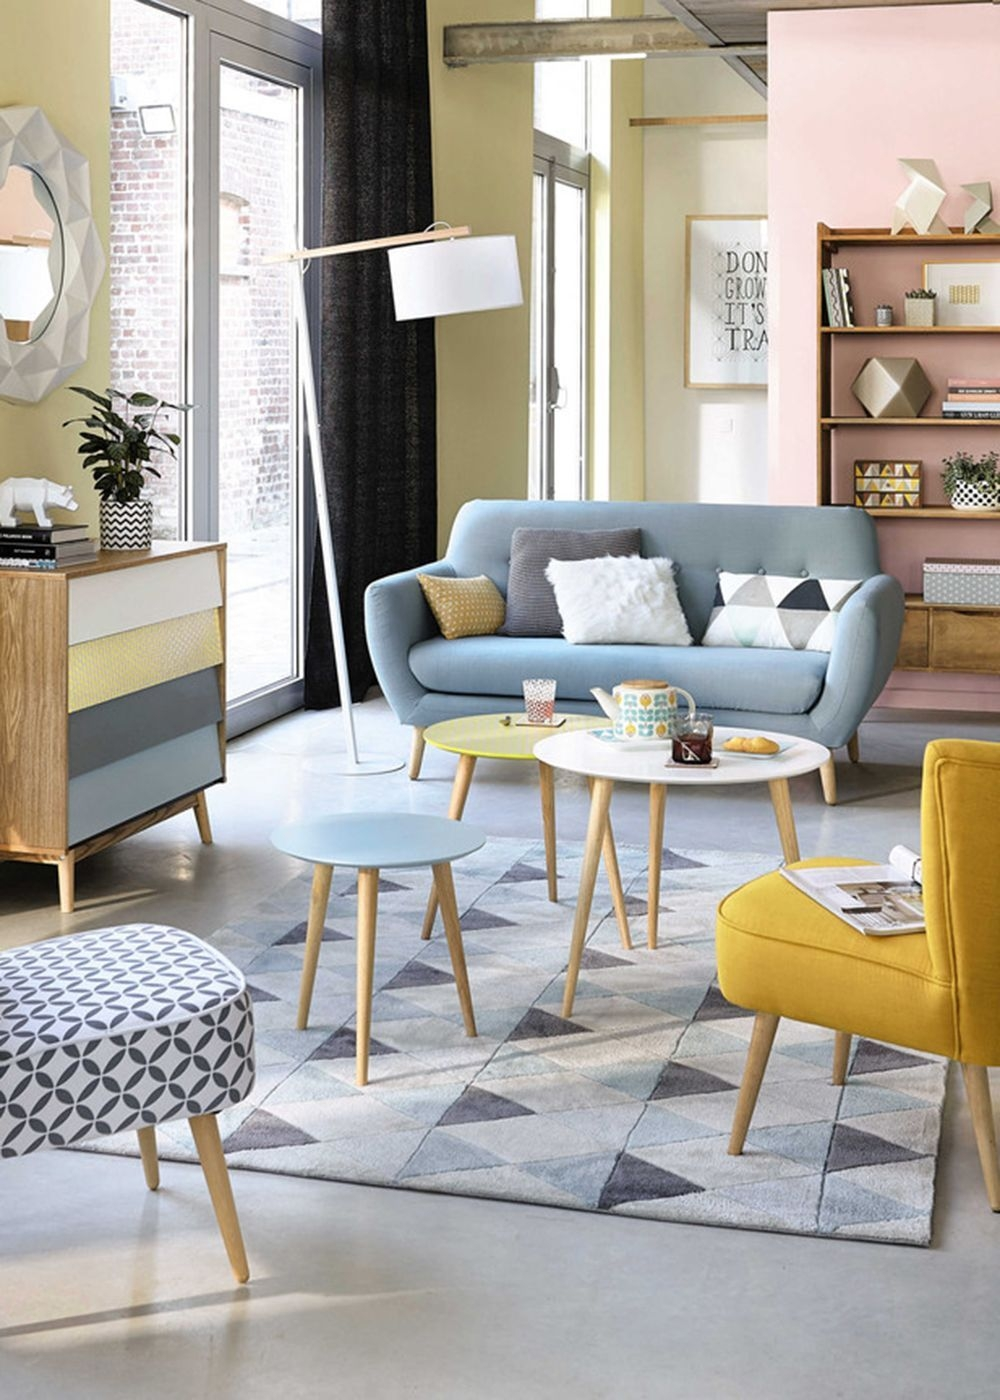 How To Style A Coffee Table In Your Living Room Decor  Pastel Living Room Retro Living Rooms